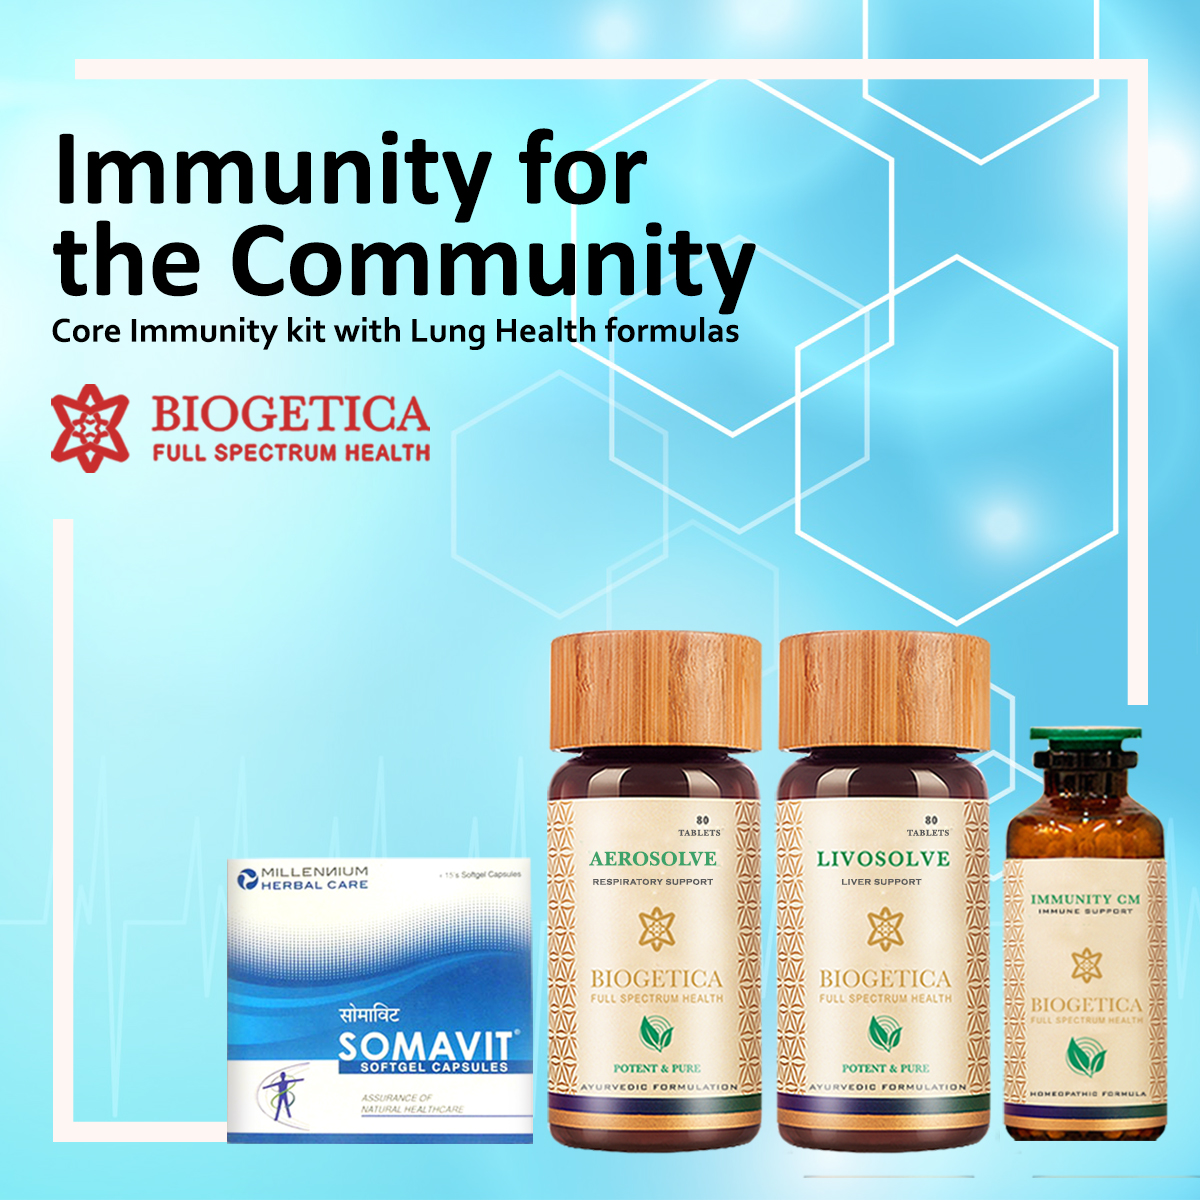 biogetica core immunity boost kit with lung health formula